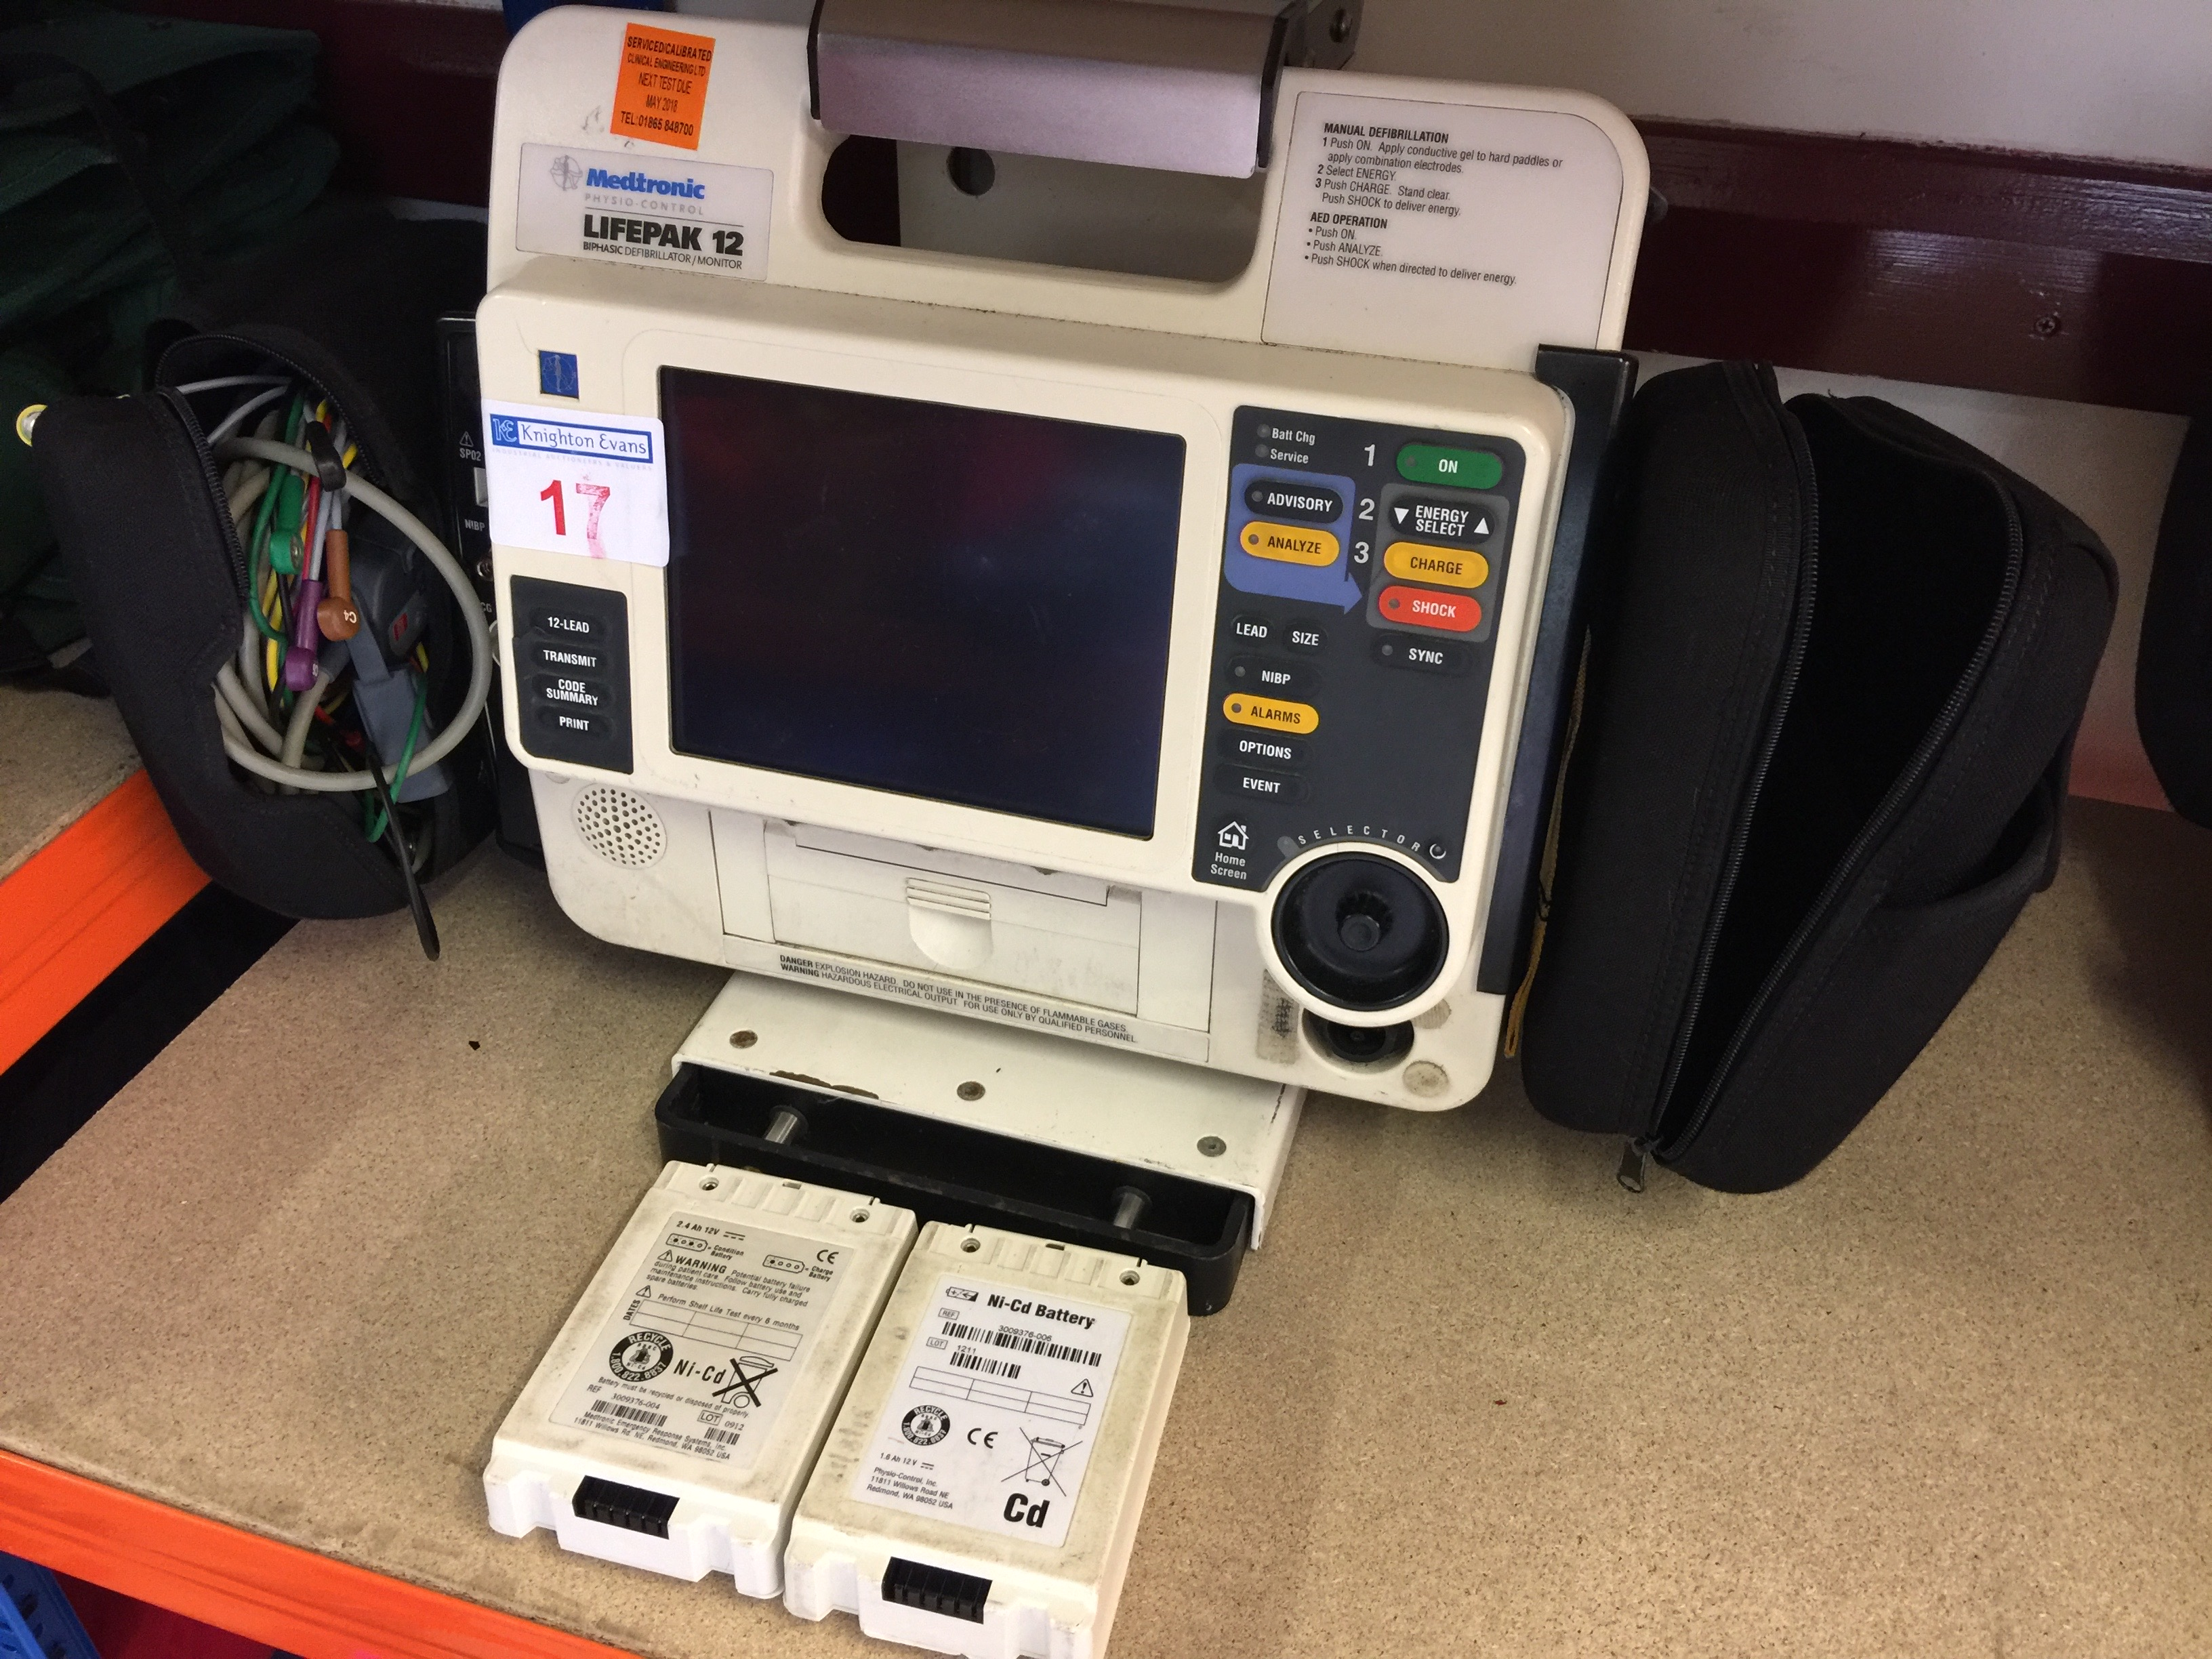 Lot 17 - Medtronic Physio Control Life-Pak 12 portable defibrillator with wall bracket, charger and